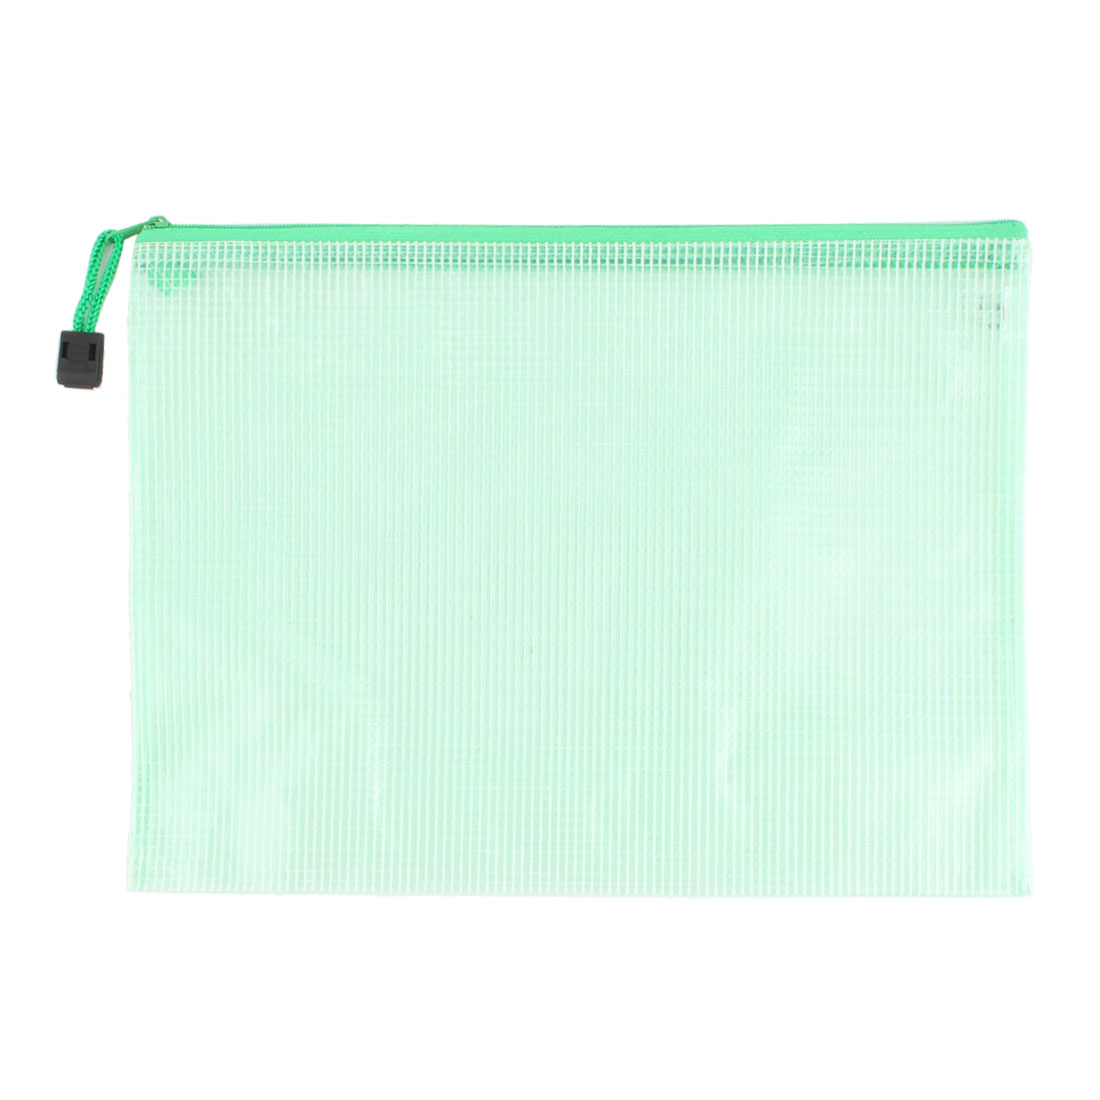 School Office Portable Document File Zippy Closure Folder Holder Bag Green